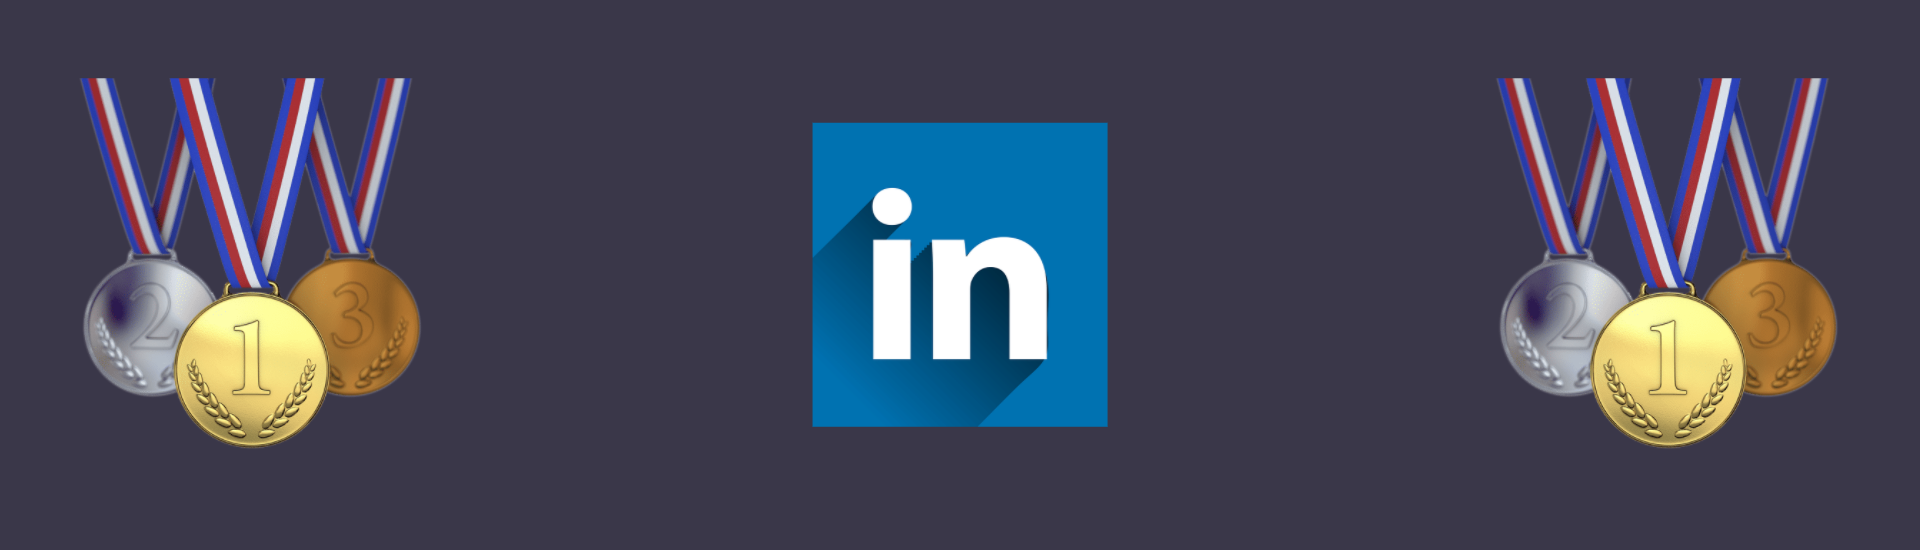 Nigel Cliffe's top 3 tips to increase engagement on LinkedIn